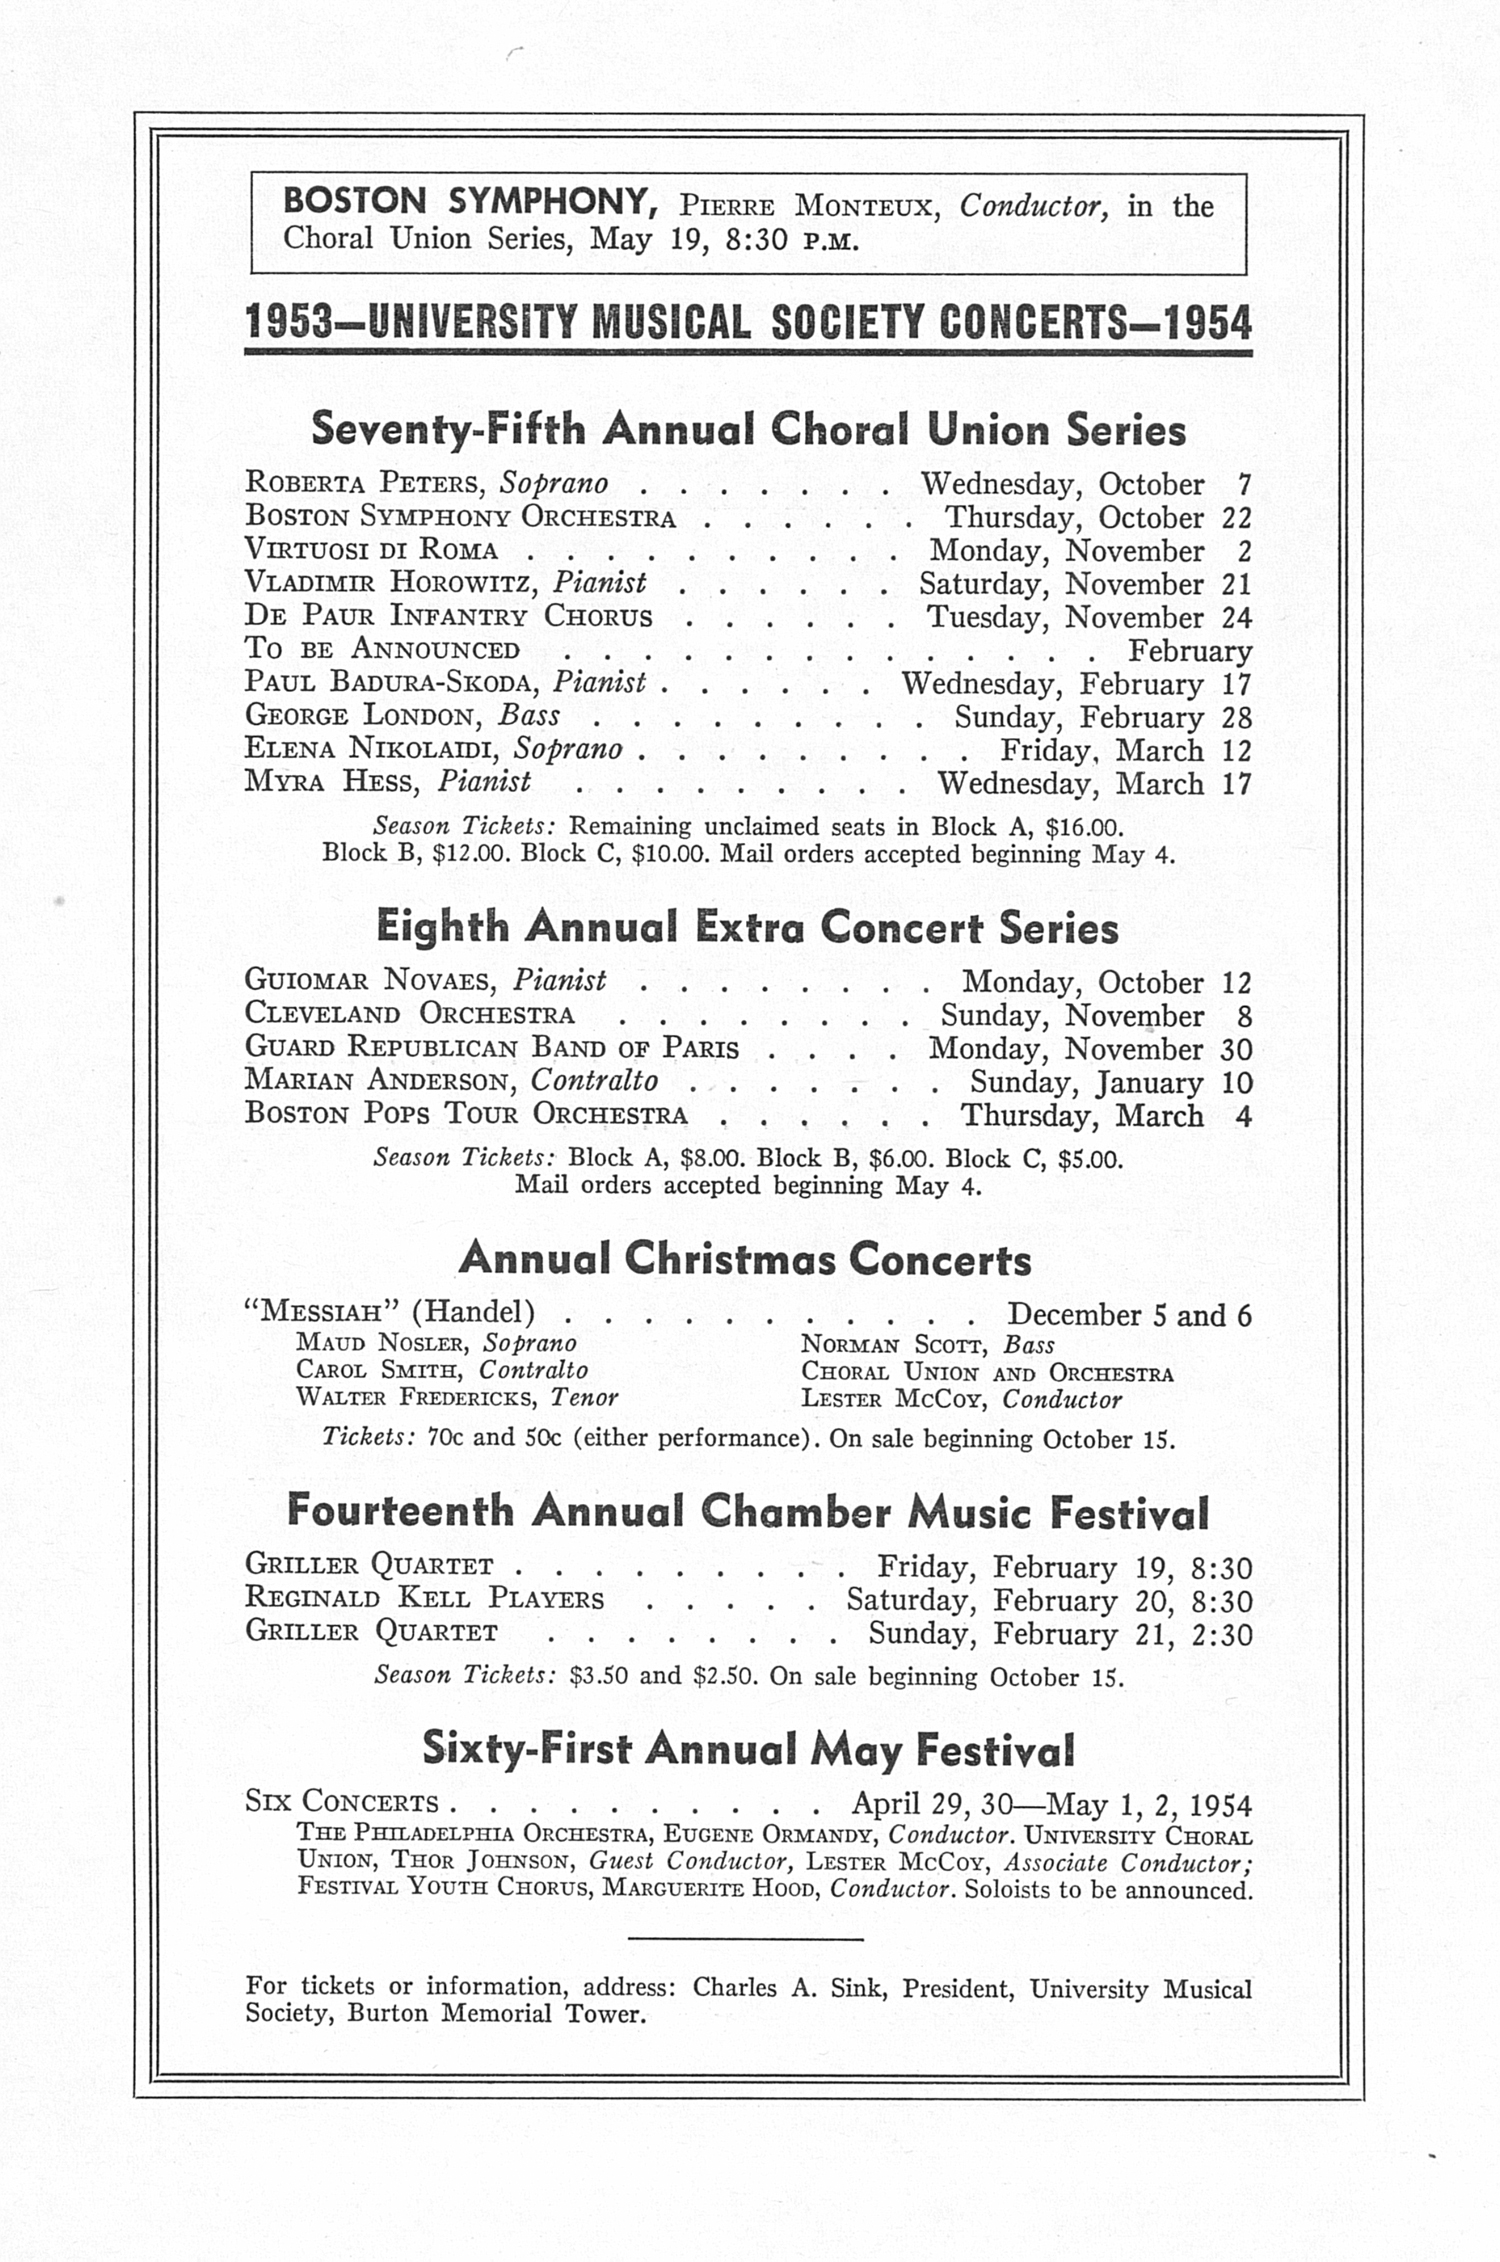 UMS Concert Program, May 2, 1953: Sixtieth Annual May Festival -- The Philadelphia Orchestra image